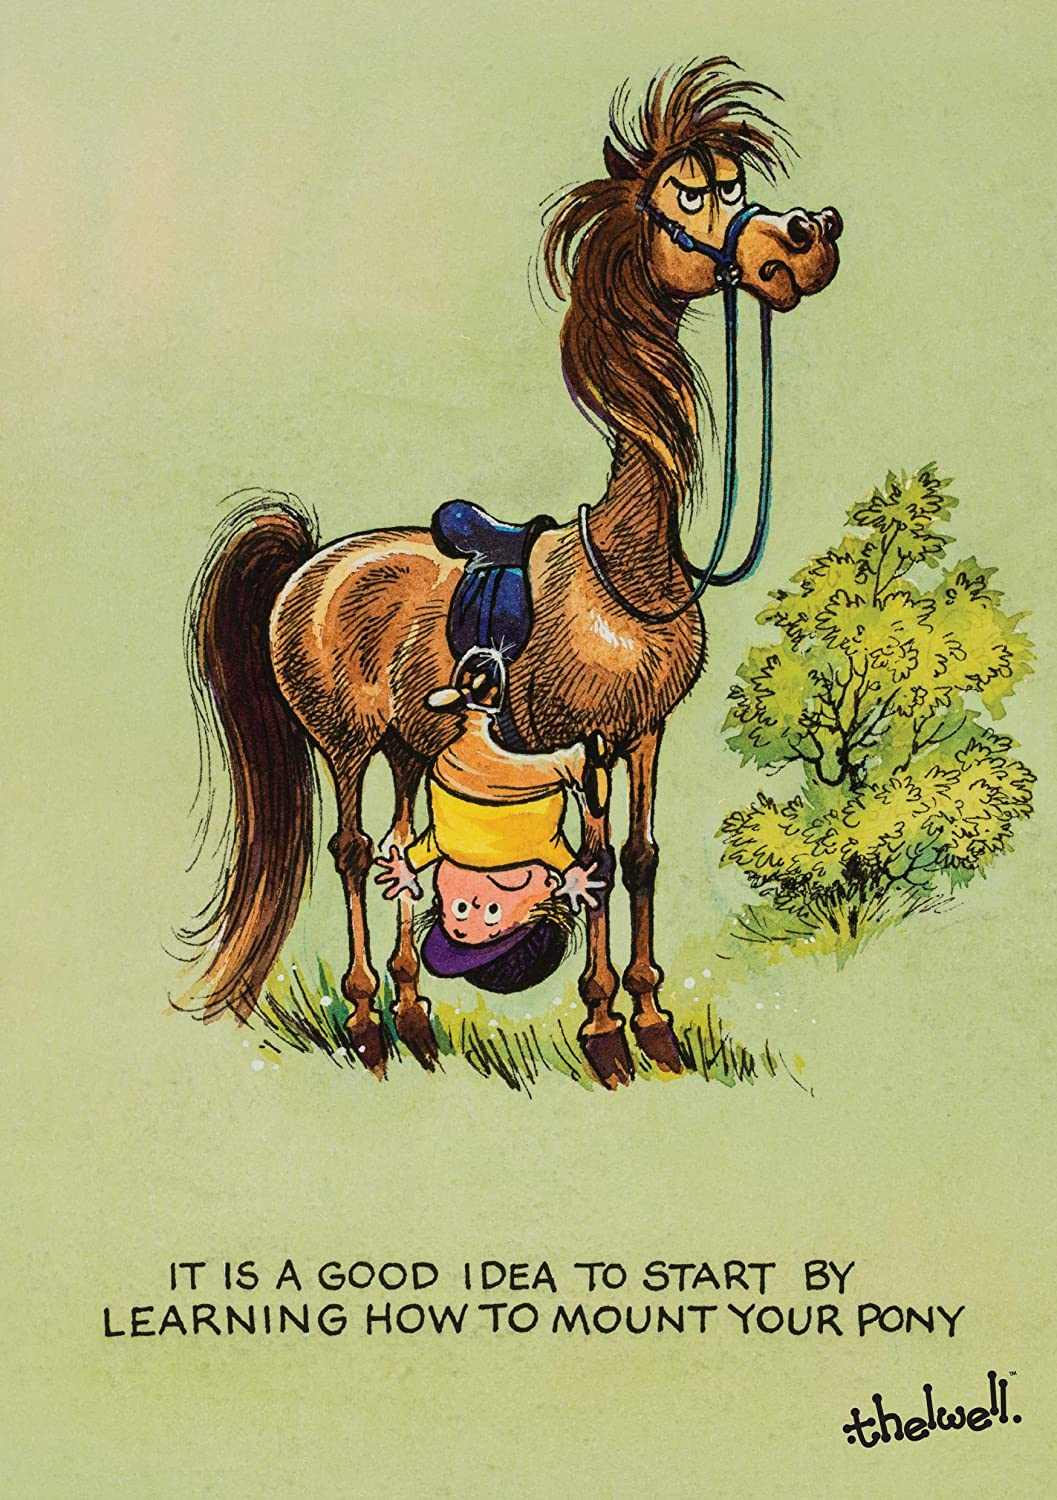 Thelwell Horse or Pony Greeting Card Learning to Ride Agripix Ltd